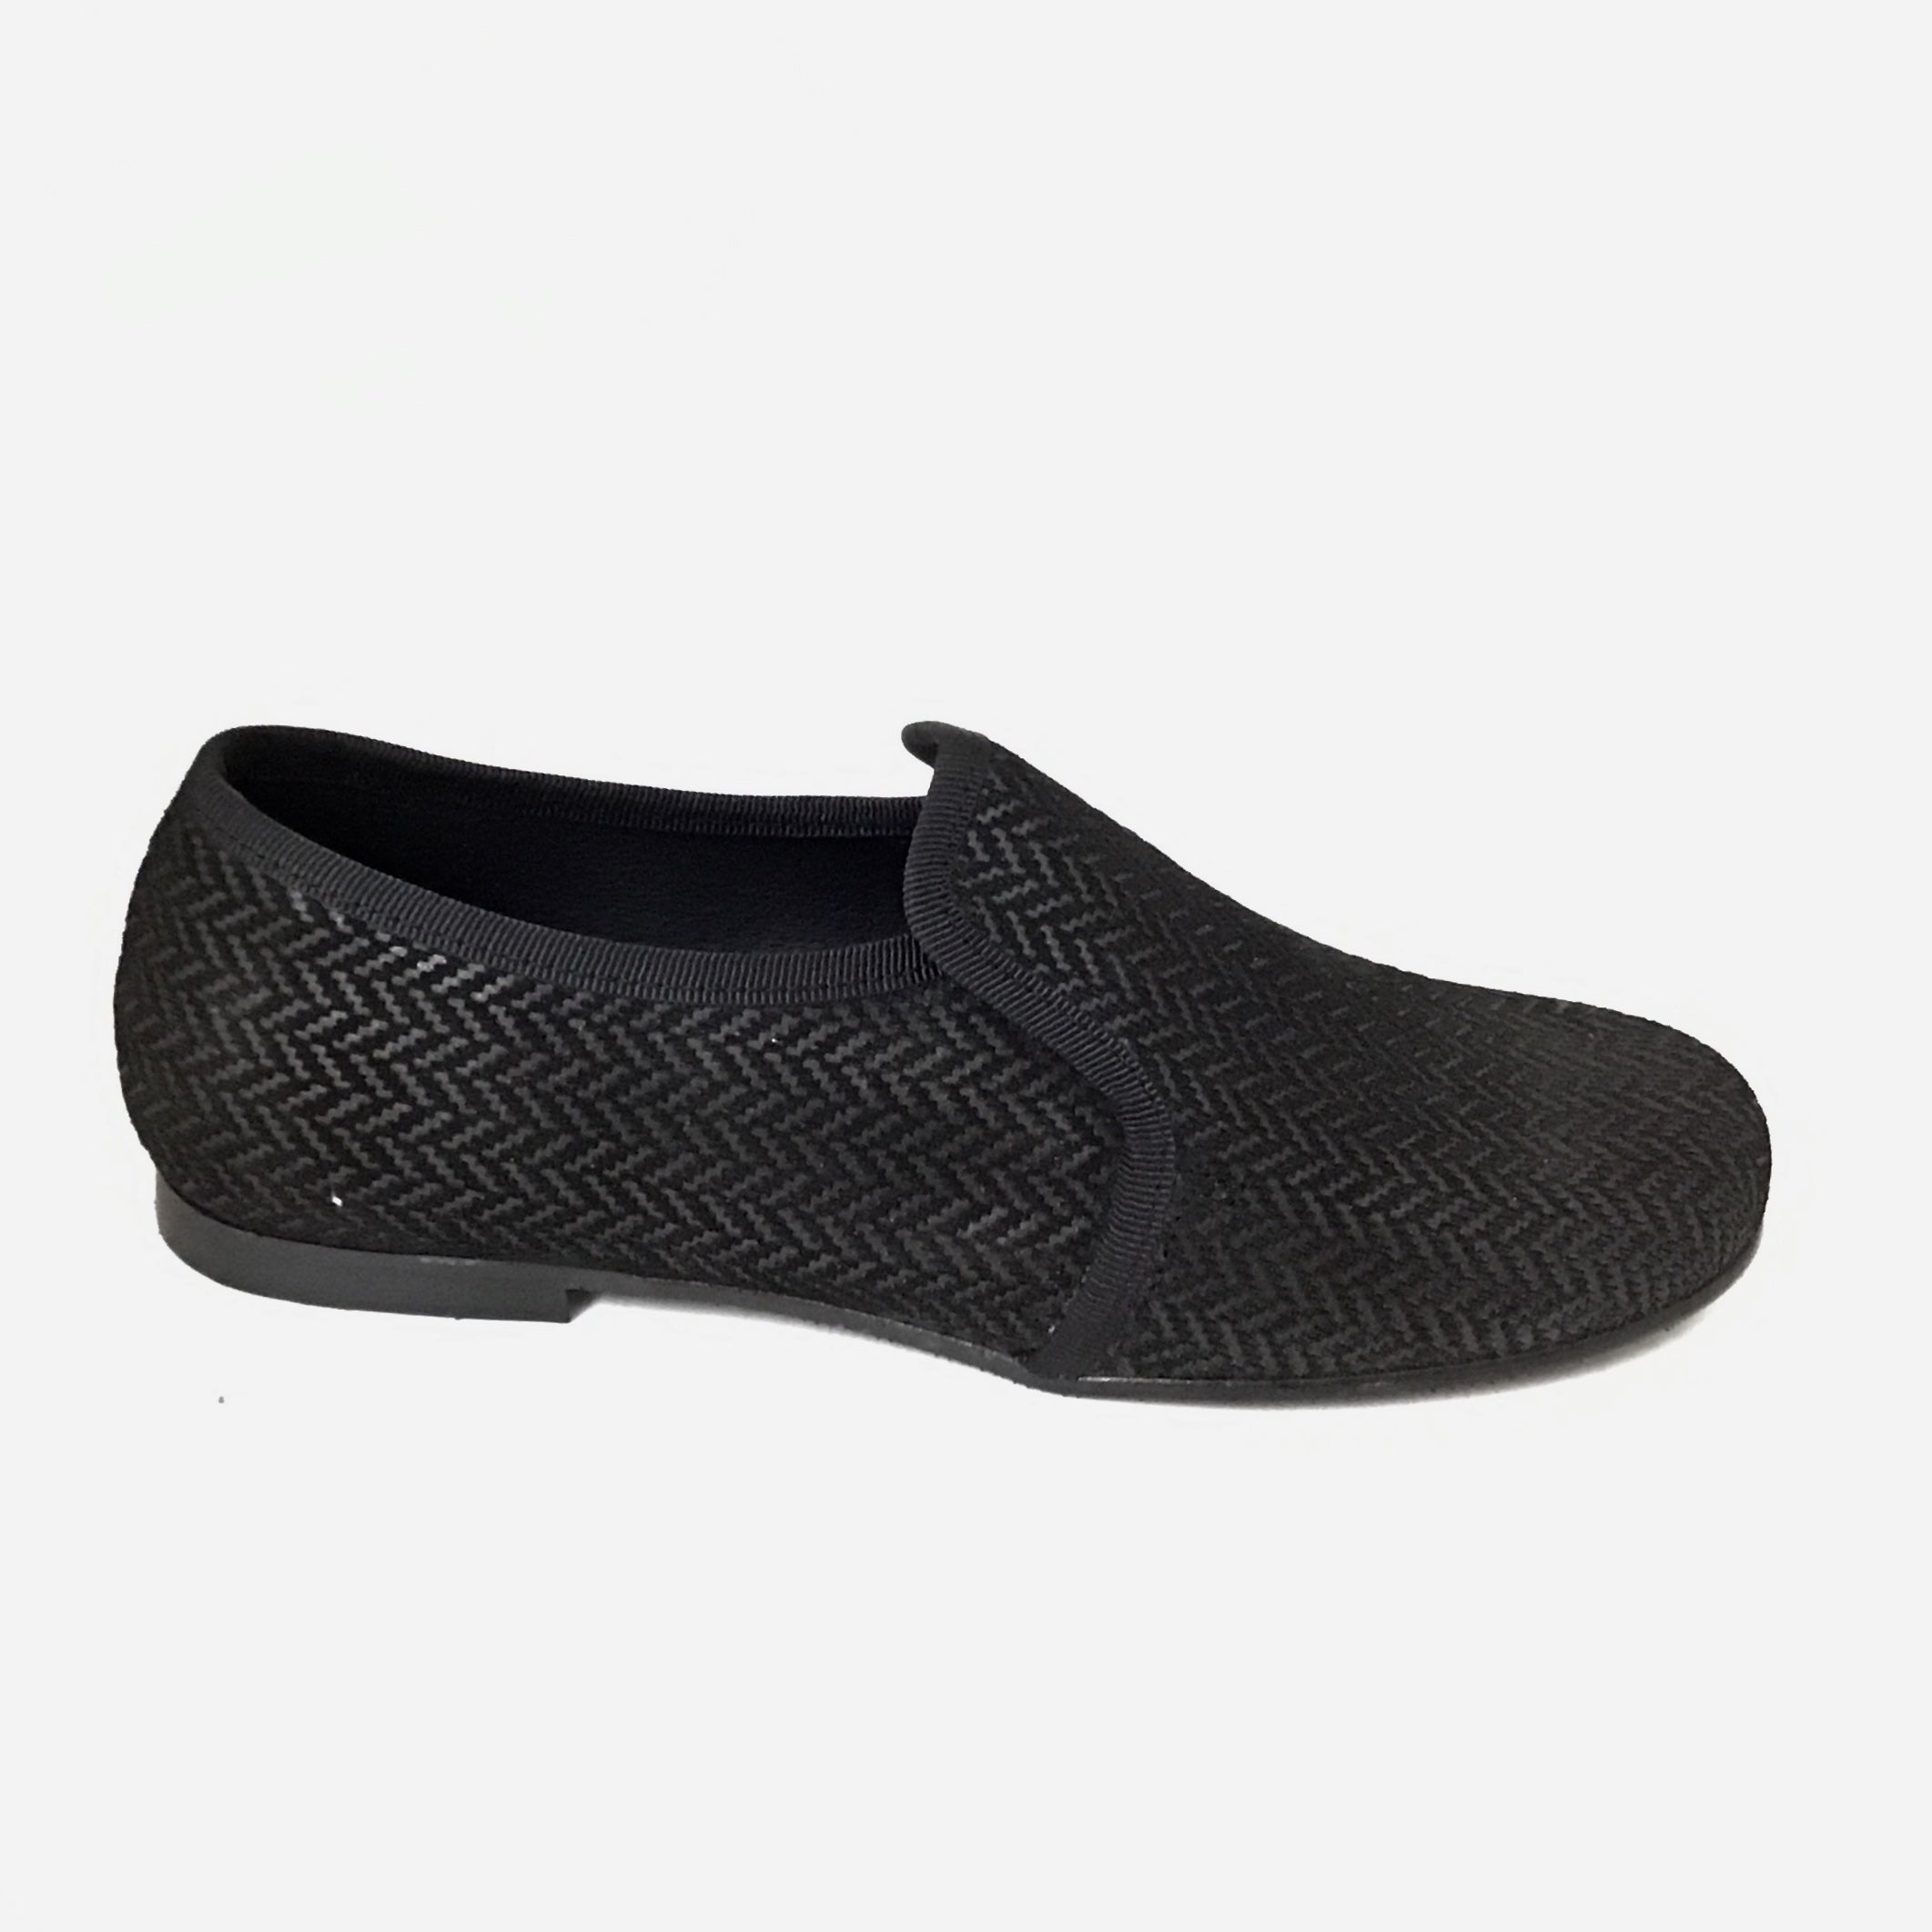 Luccini Black Suede Herringbone Slip On